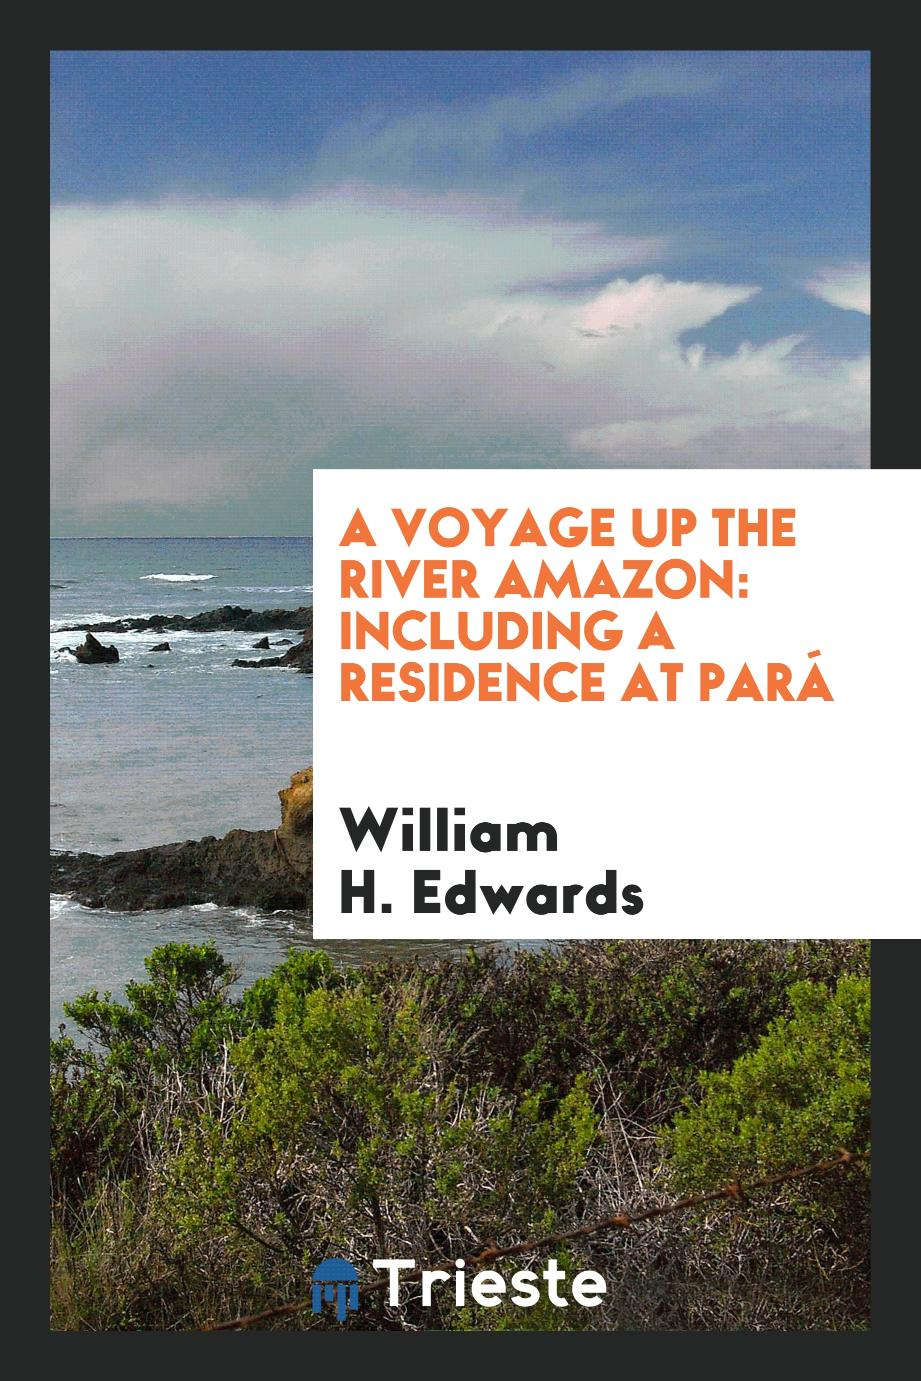 William H. Edwards - A voyage up the river Amazon: including a residence at Pará